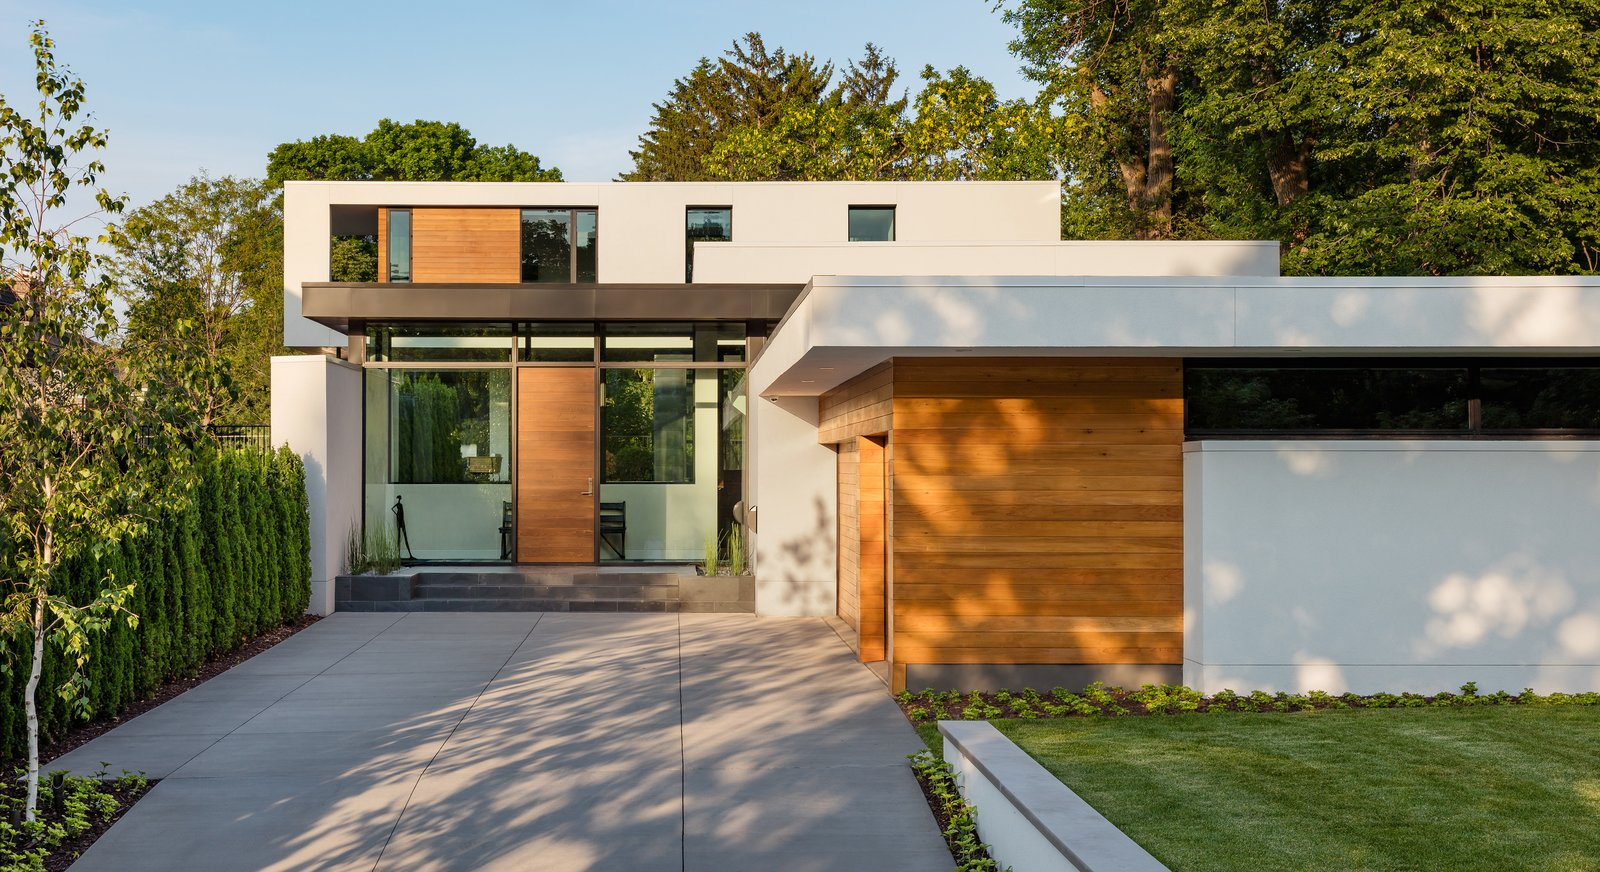 Tagged: Attached Garage, Front Yard, Wood, Swing Door Type, Exterior, Metal, Outdoor, Trees, Garden, and Raised Planters.  Calhoun Pavilions Residence by Peterssen/Keller Architecture